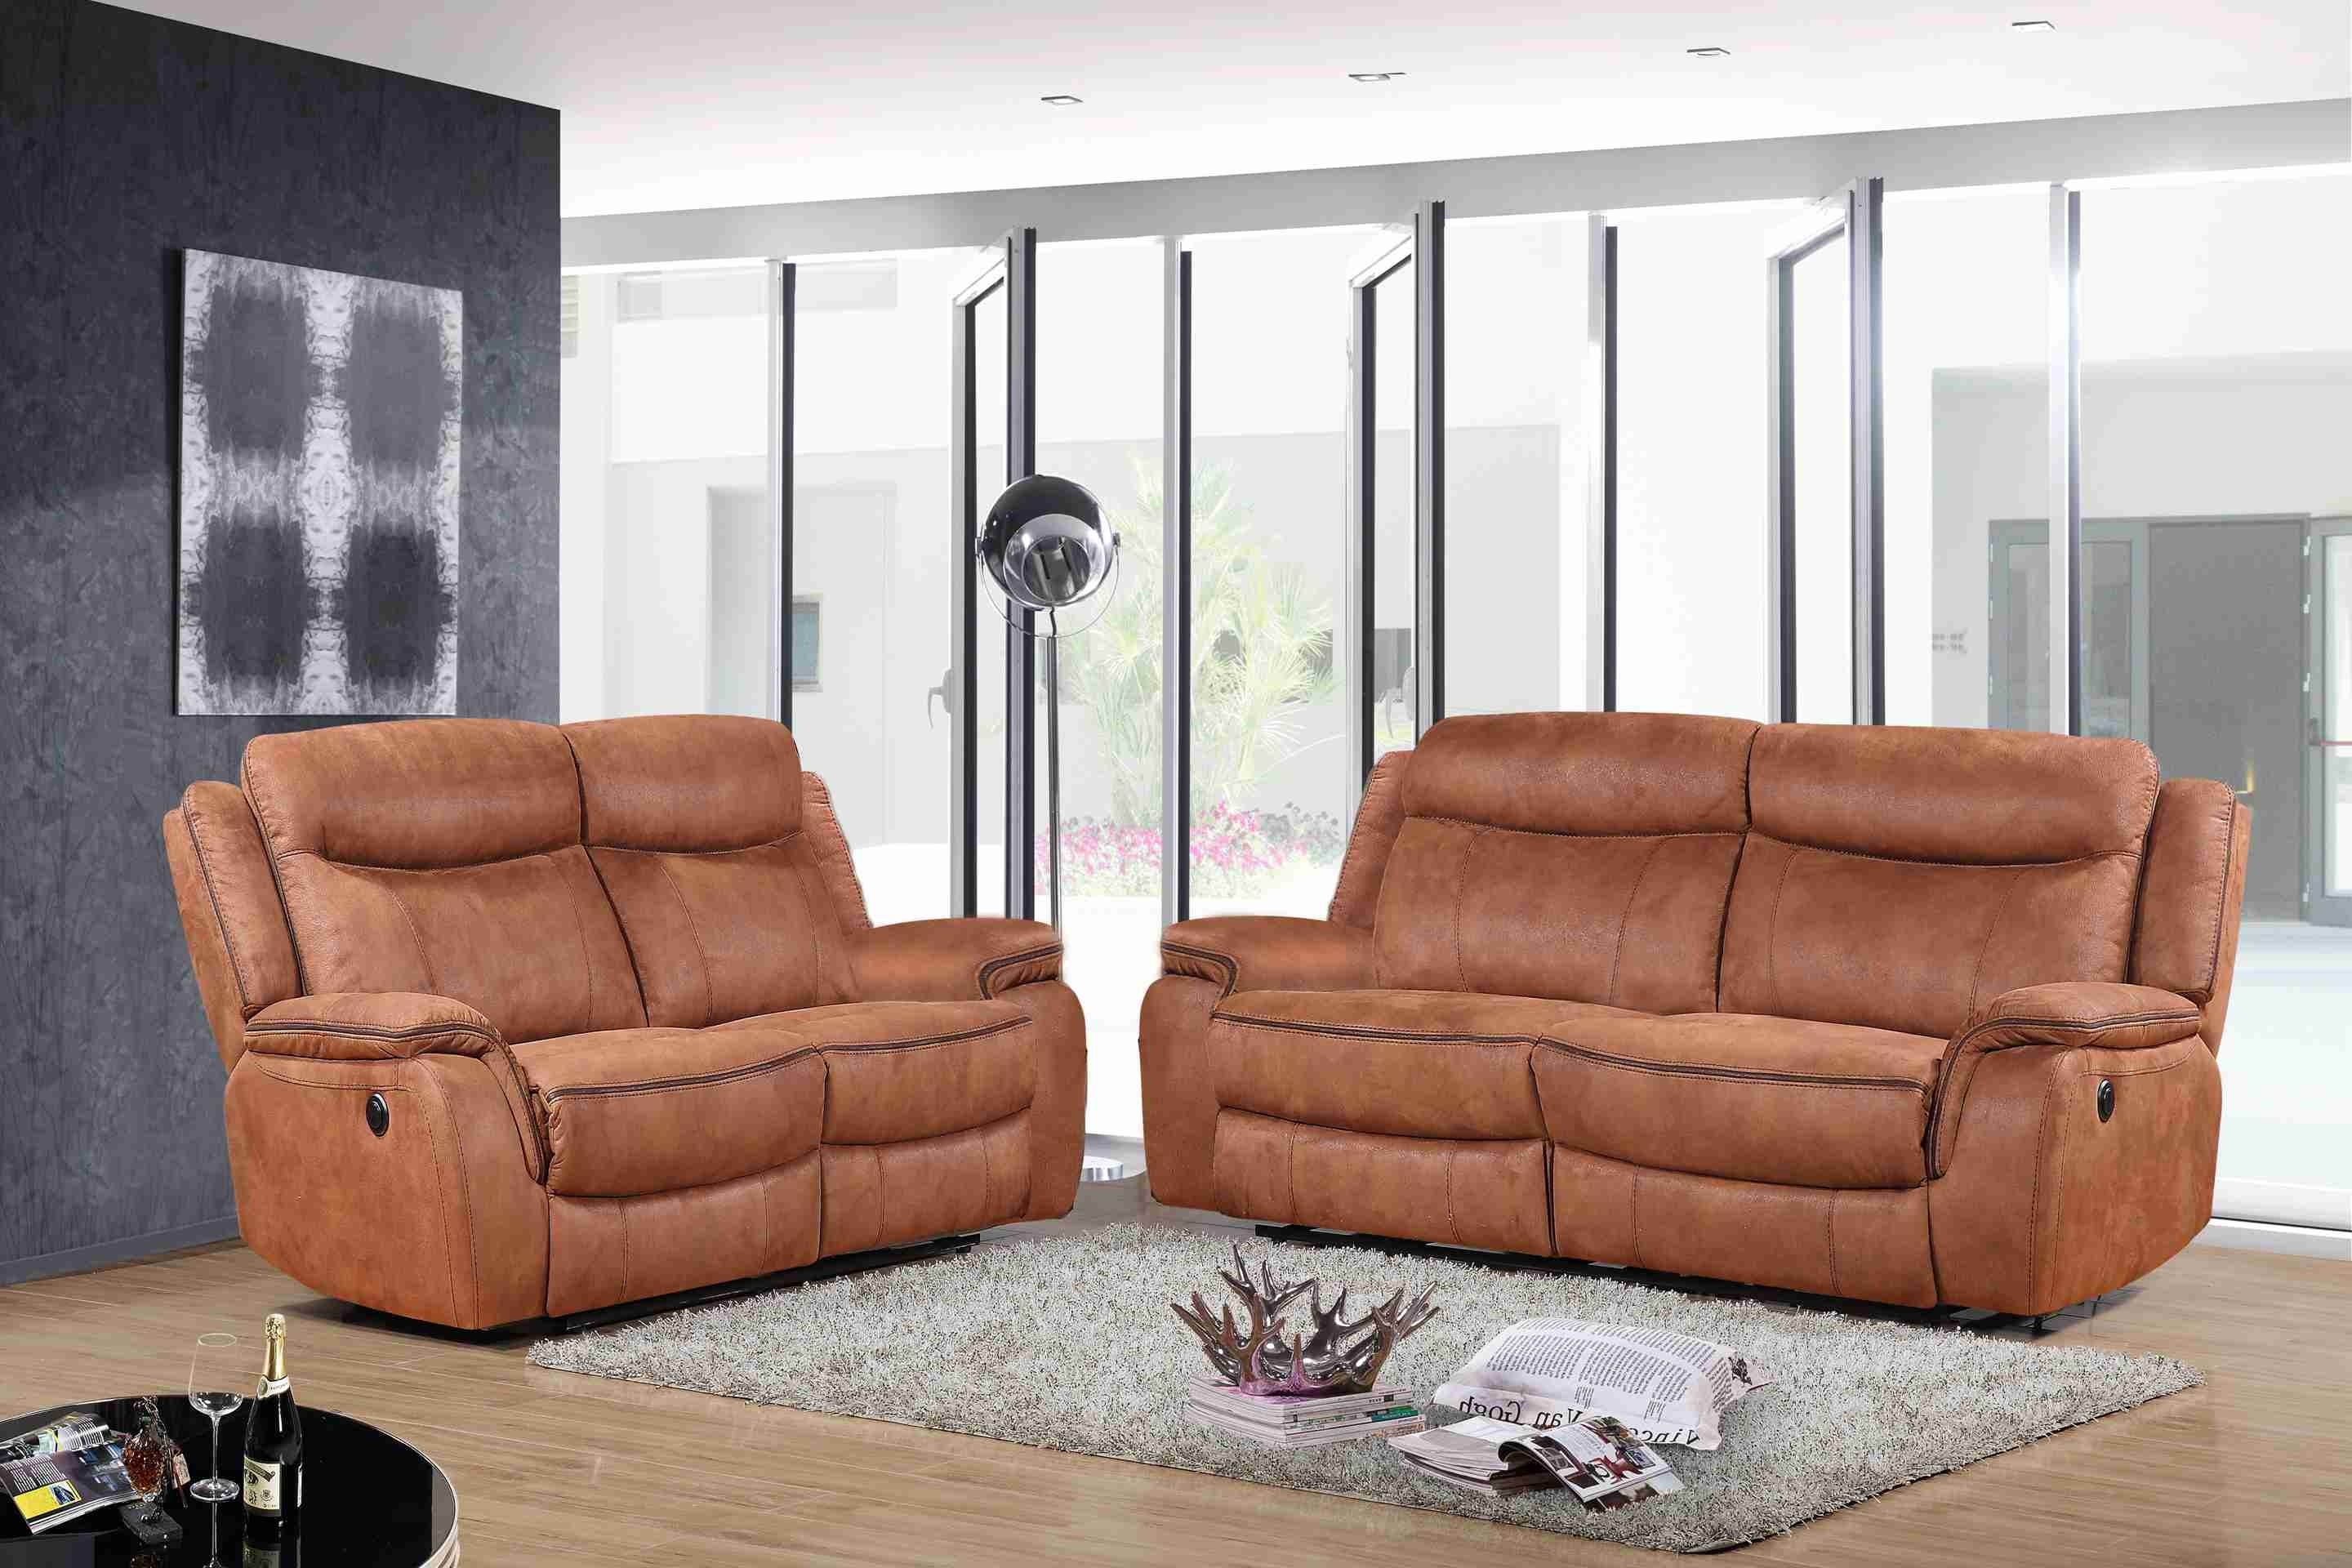 Wondrous 3 Pcs Manual Recliner Sofa Set Hot Stamping Fabric Camel Squirreltailoven Fun Painted Chair Ideas Images Squirreltailovenorg